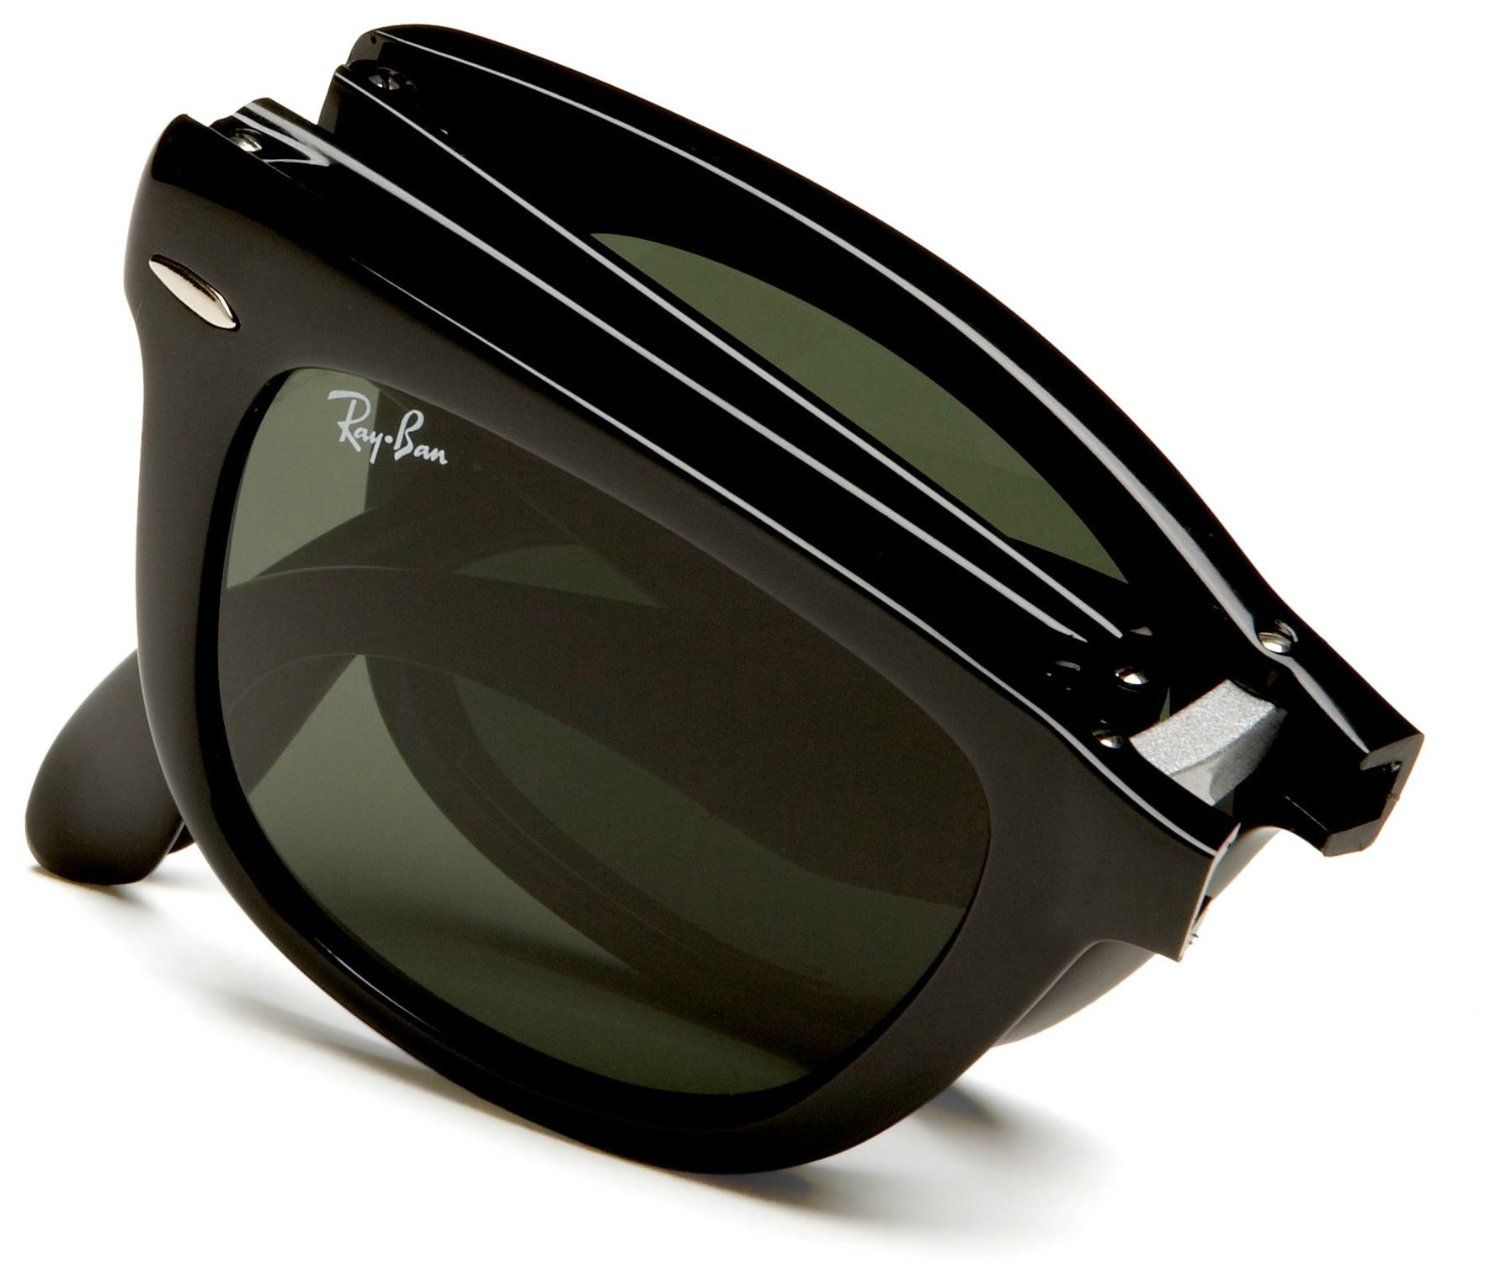 rb4105 qea2  Amazoncom: Ray-Ban Unisex RB4105 Folding Wayfarer Sunglasses,Black Frame/